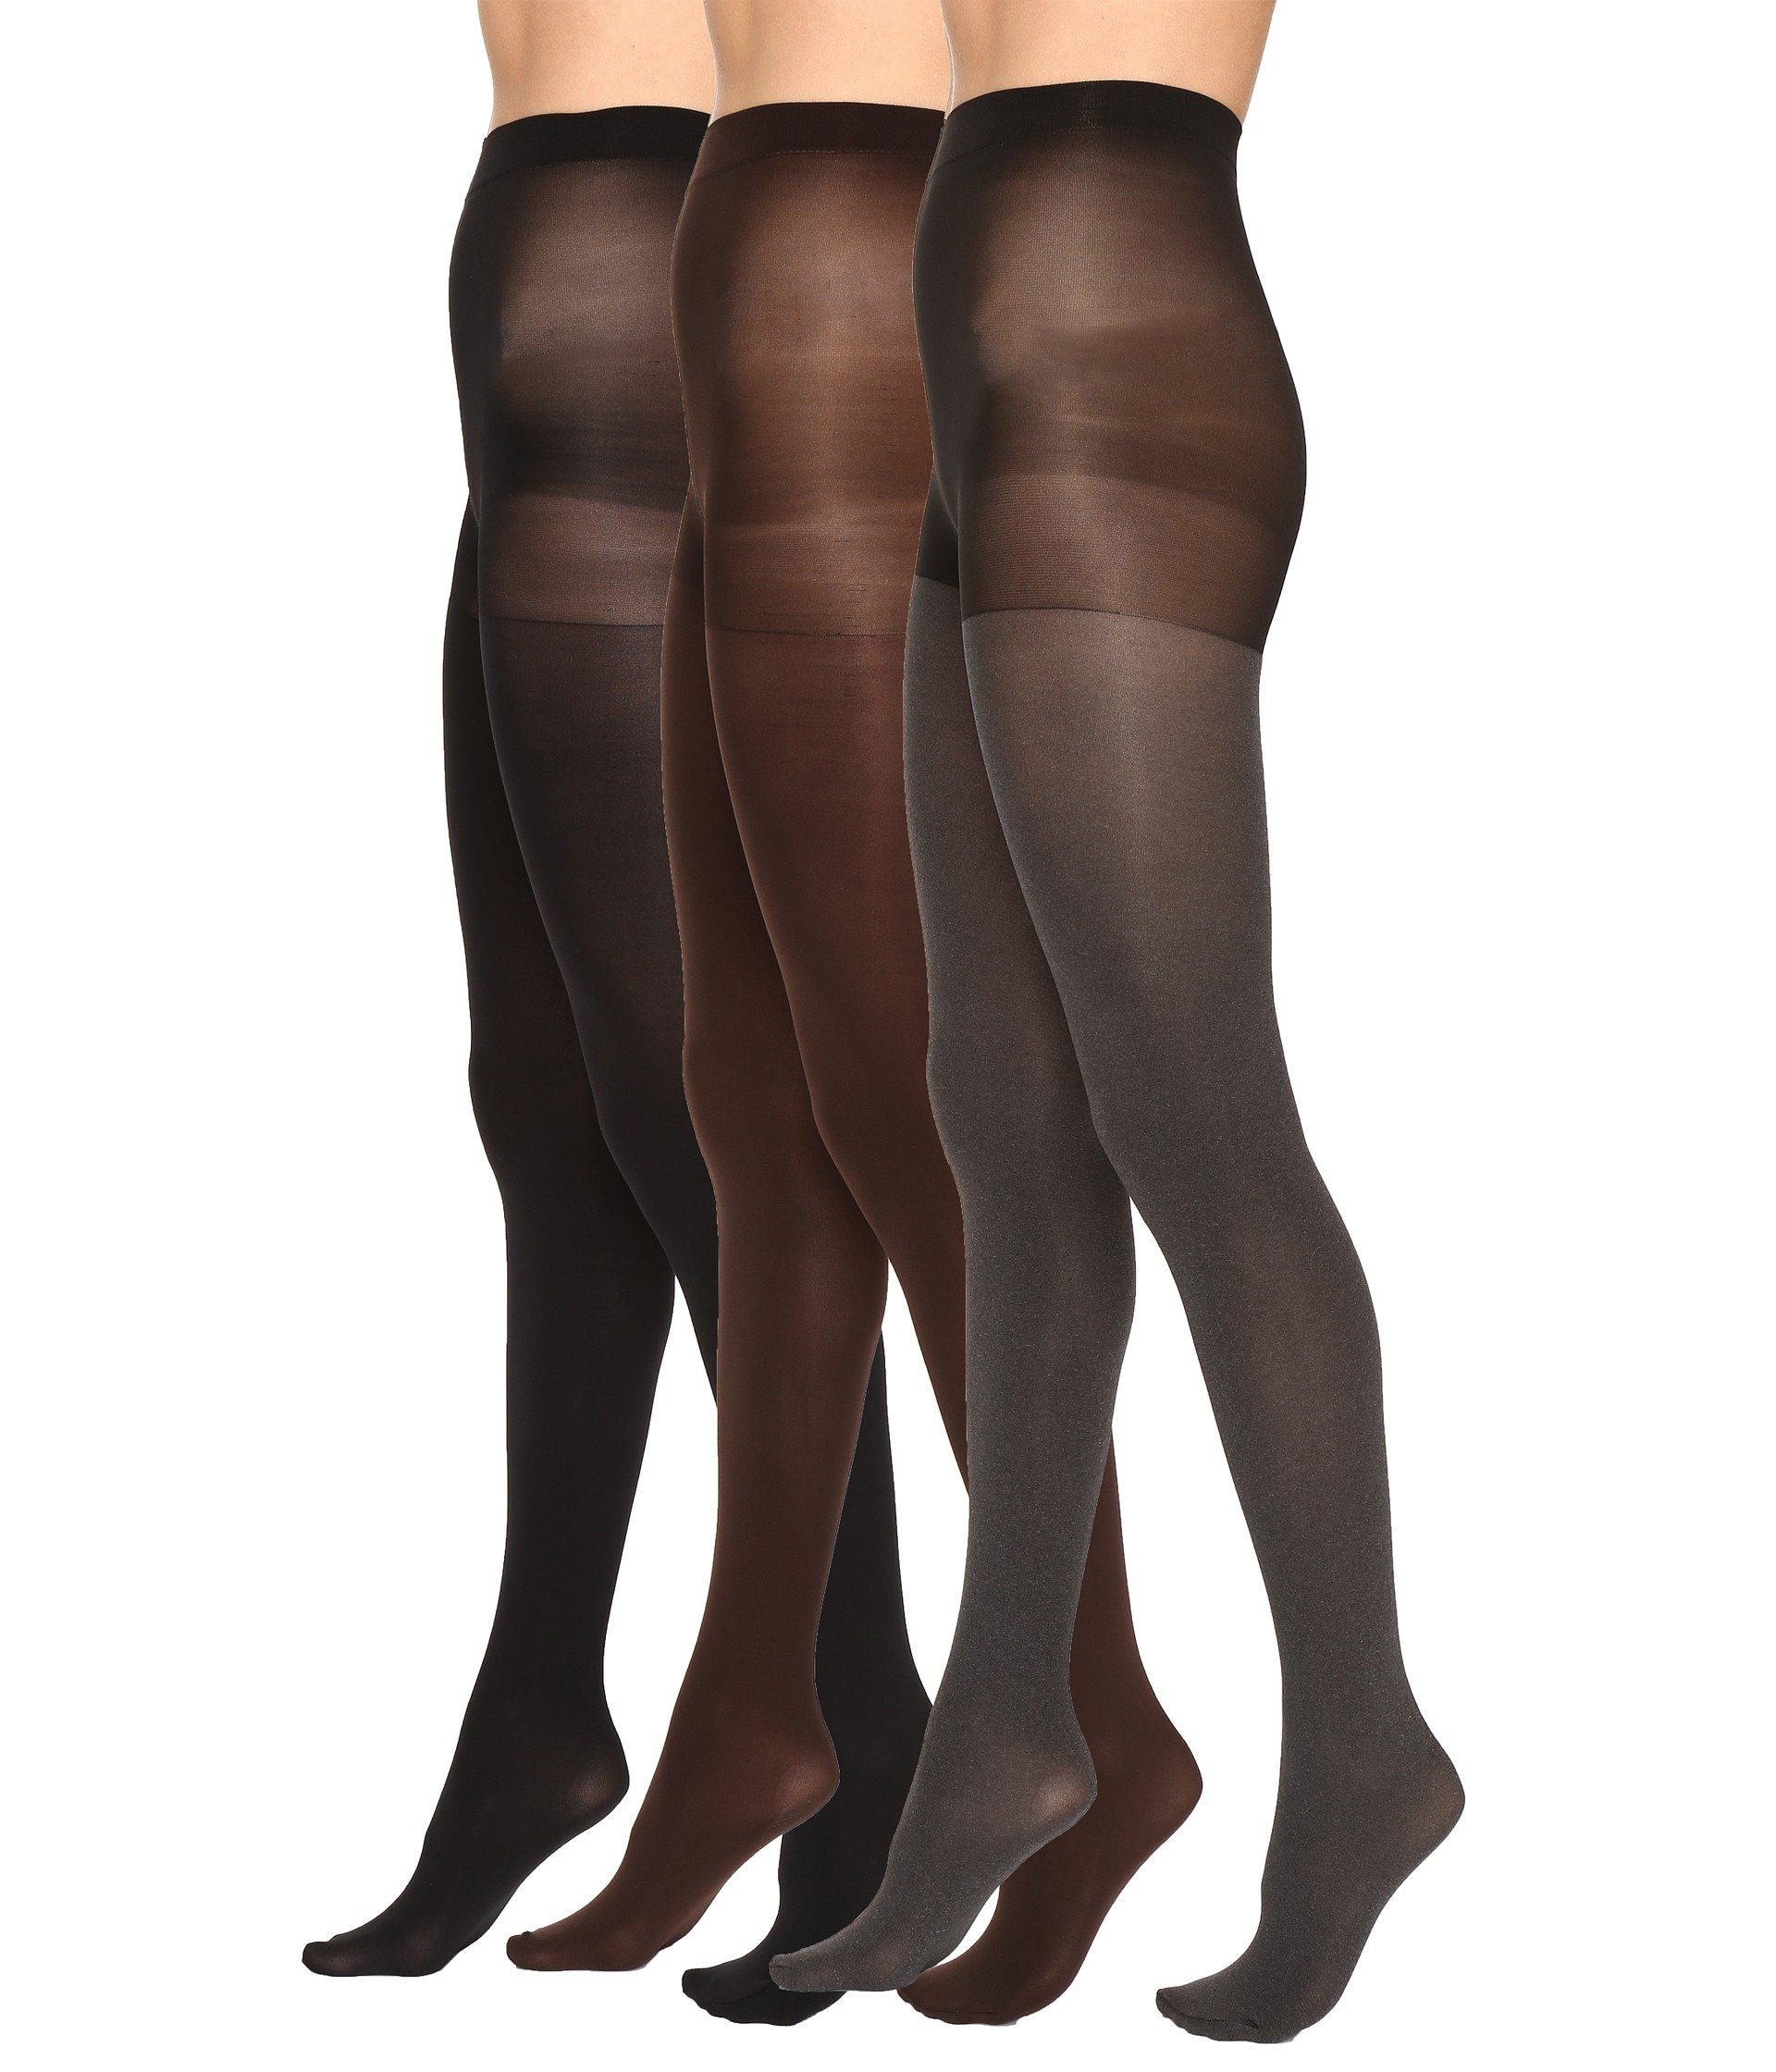 09c303ad2 Lyst - Hue Super Opaque 3 Pair Pack Tights (basic Asst) Hose in Natural